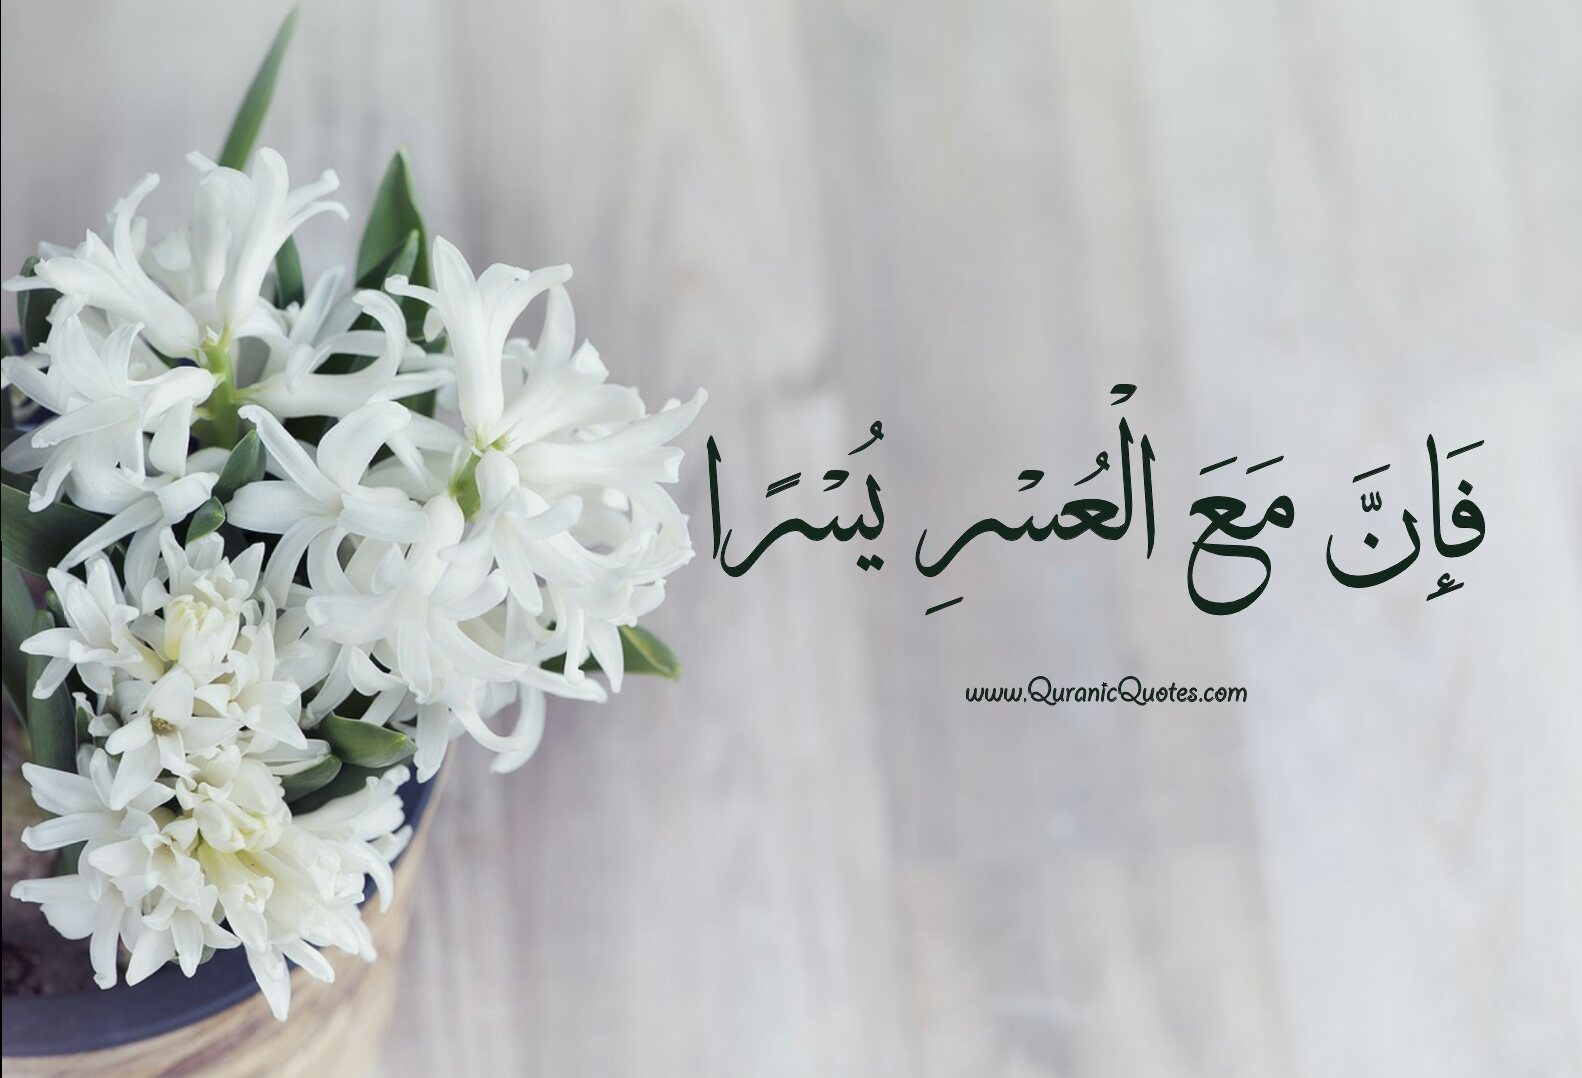 So Verily, With Difficulty, There is Relief.